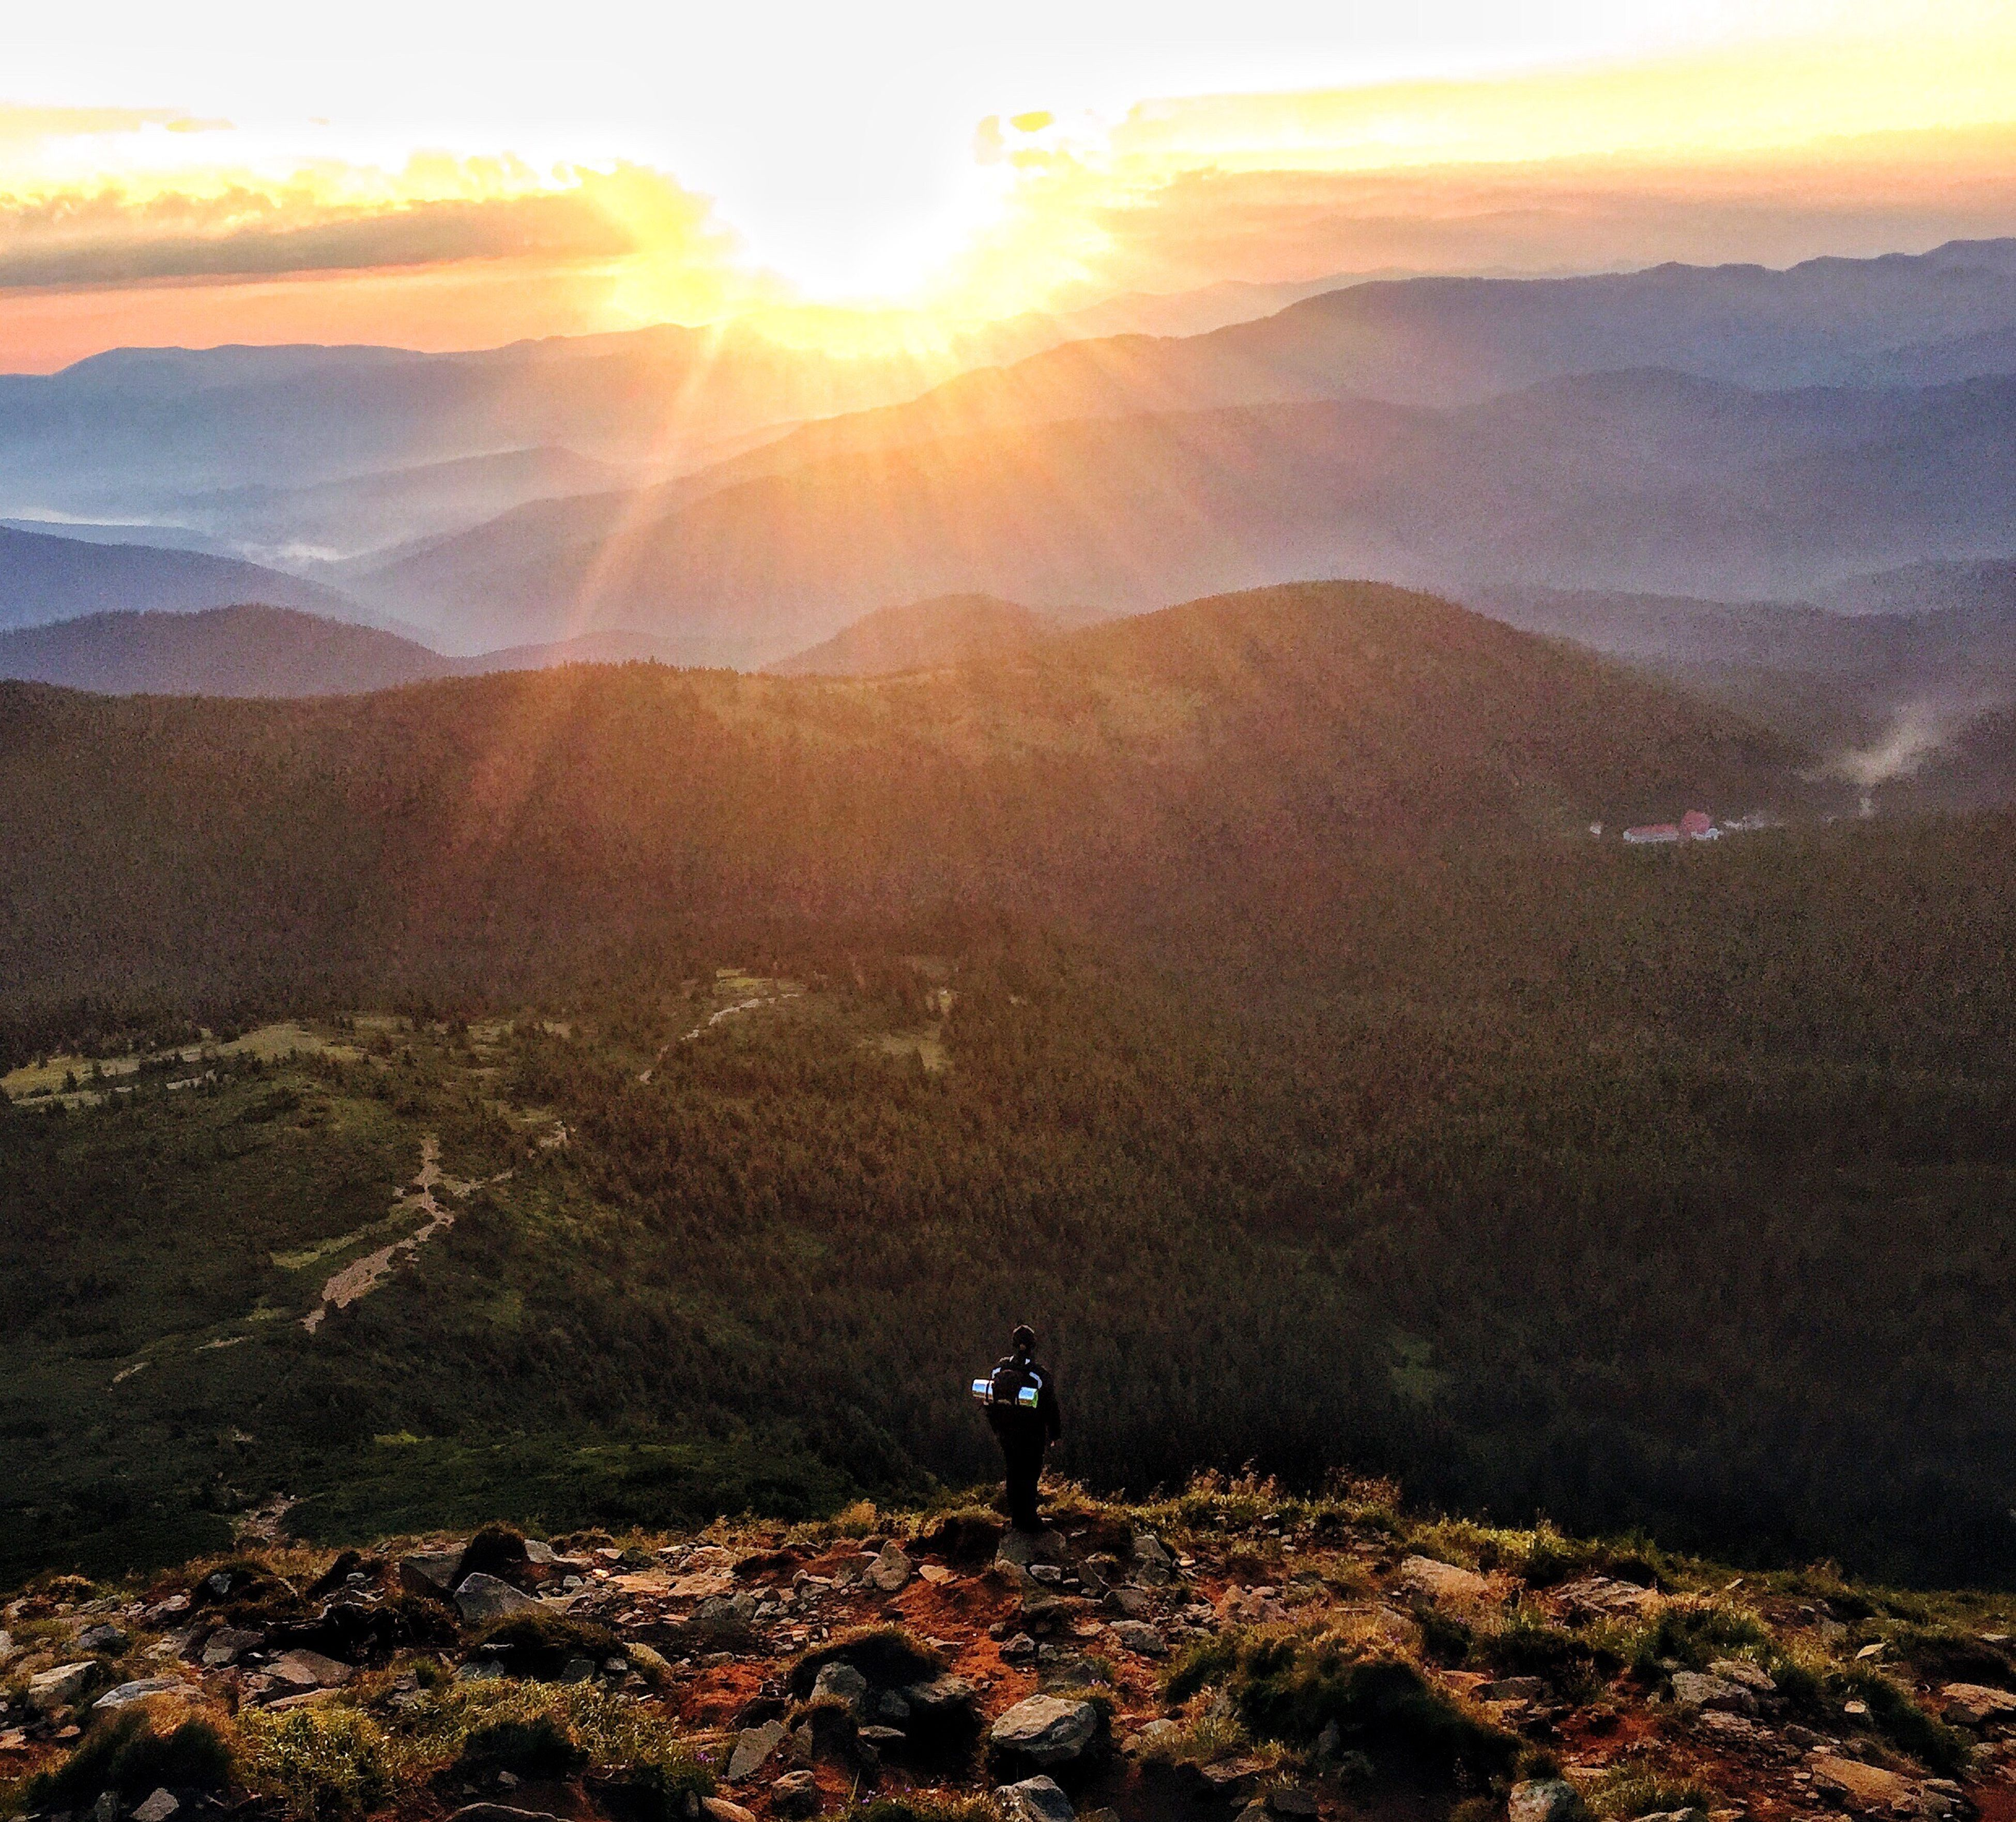 sunset, sunlight, beauty in nature, nature, sunbeam, sky, scenics, sun, outdoors, tranquility, tranquil scene, landscape, mountain, one person, day, people